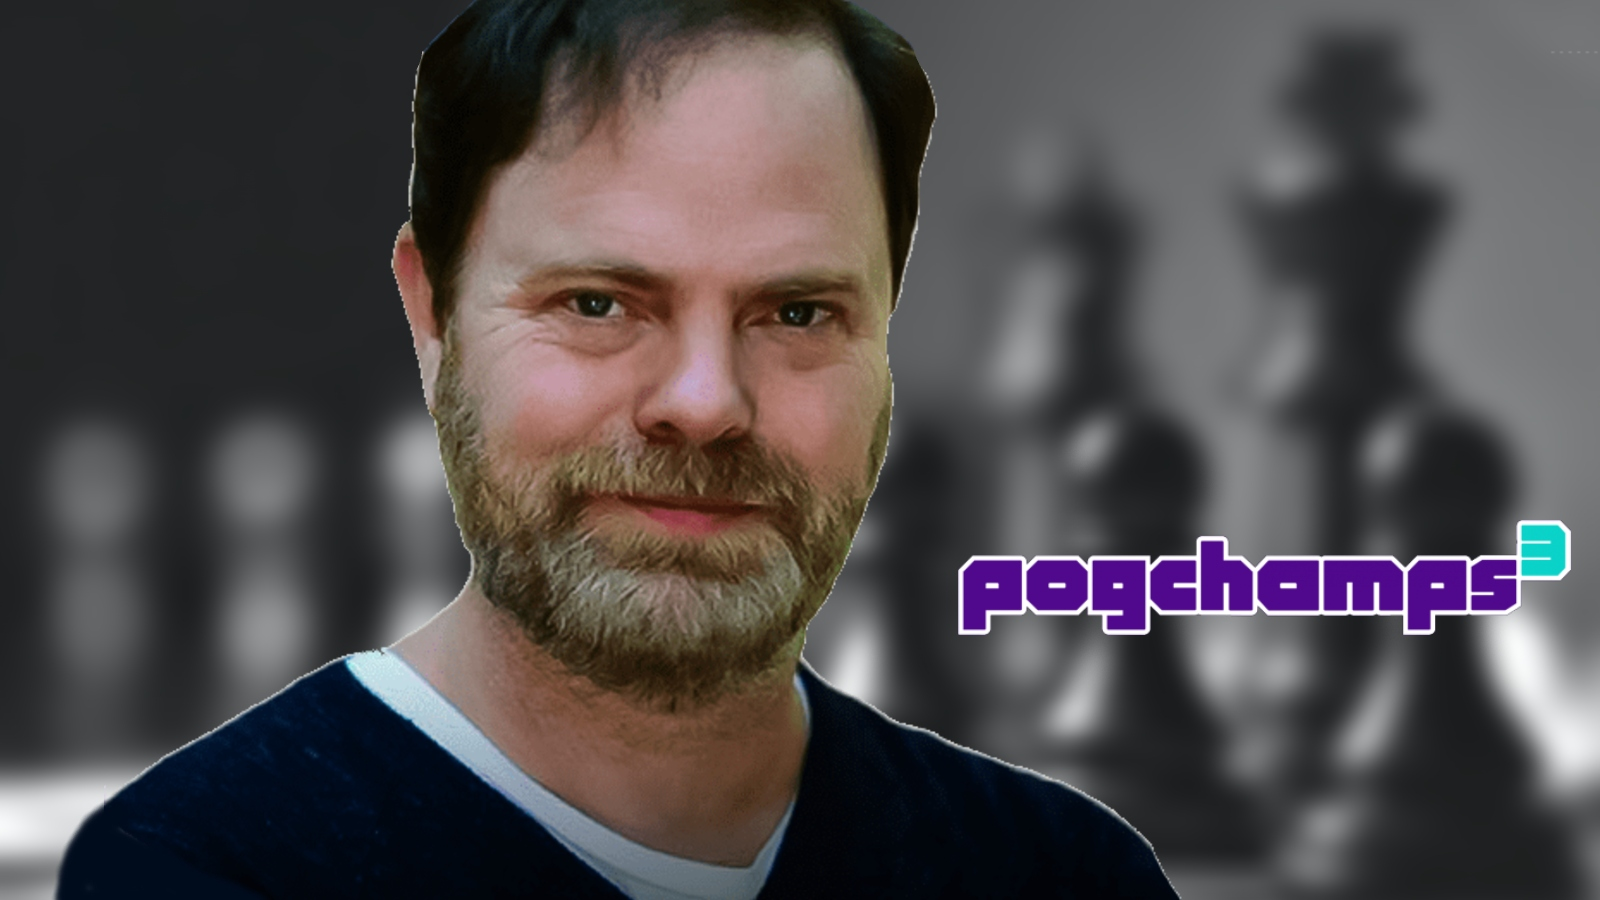 Rainn Wilson pogchamps 3 chess tournament